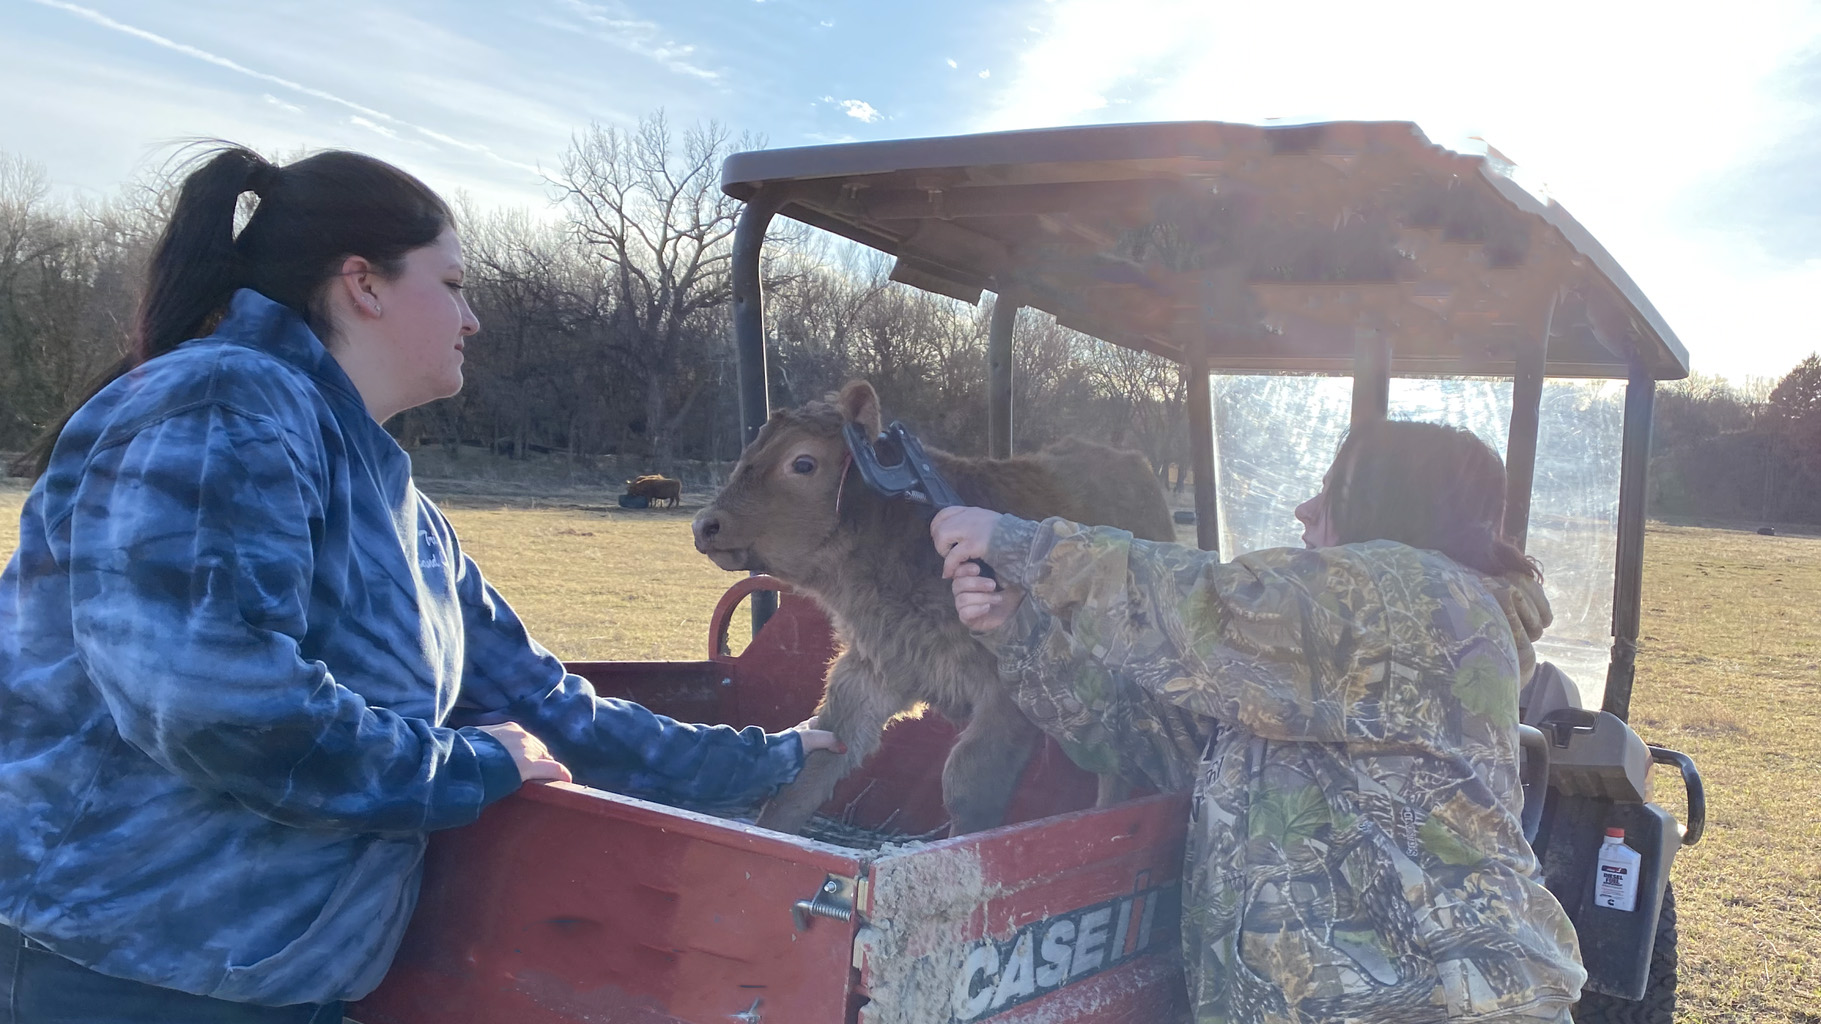 NCTA's cow herd is calving, appropriately during National Ag Week. Animals Science major Kenna Graves, left, and Veterinary Technology major Gaby Campisi, right, ear tag a calf. (Photo by Annie Bassett, NCTA animal science student